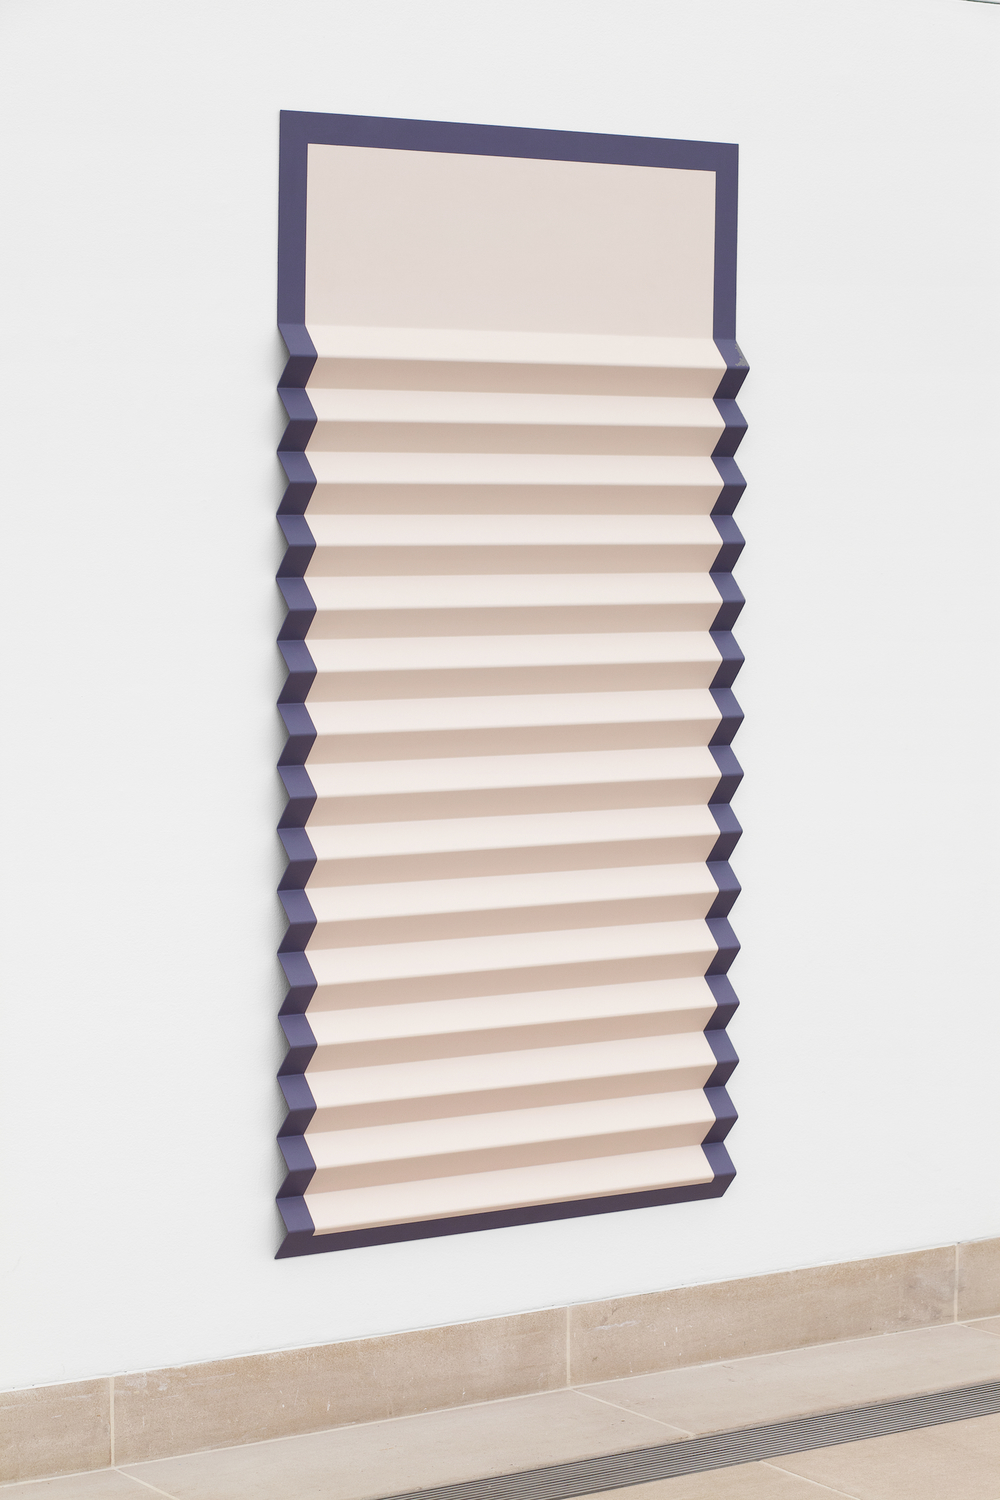 "Lisa Williamson Bed Shade with Margins 2012 Acrylic and graphite transfer on powder-coated aluminum 72"" x 36"" x 2"" LW097"